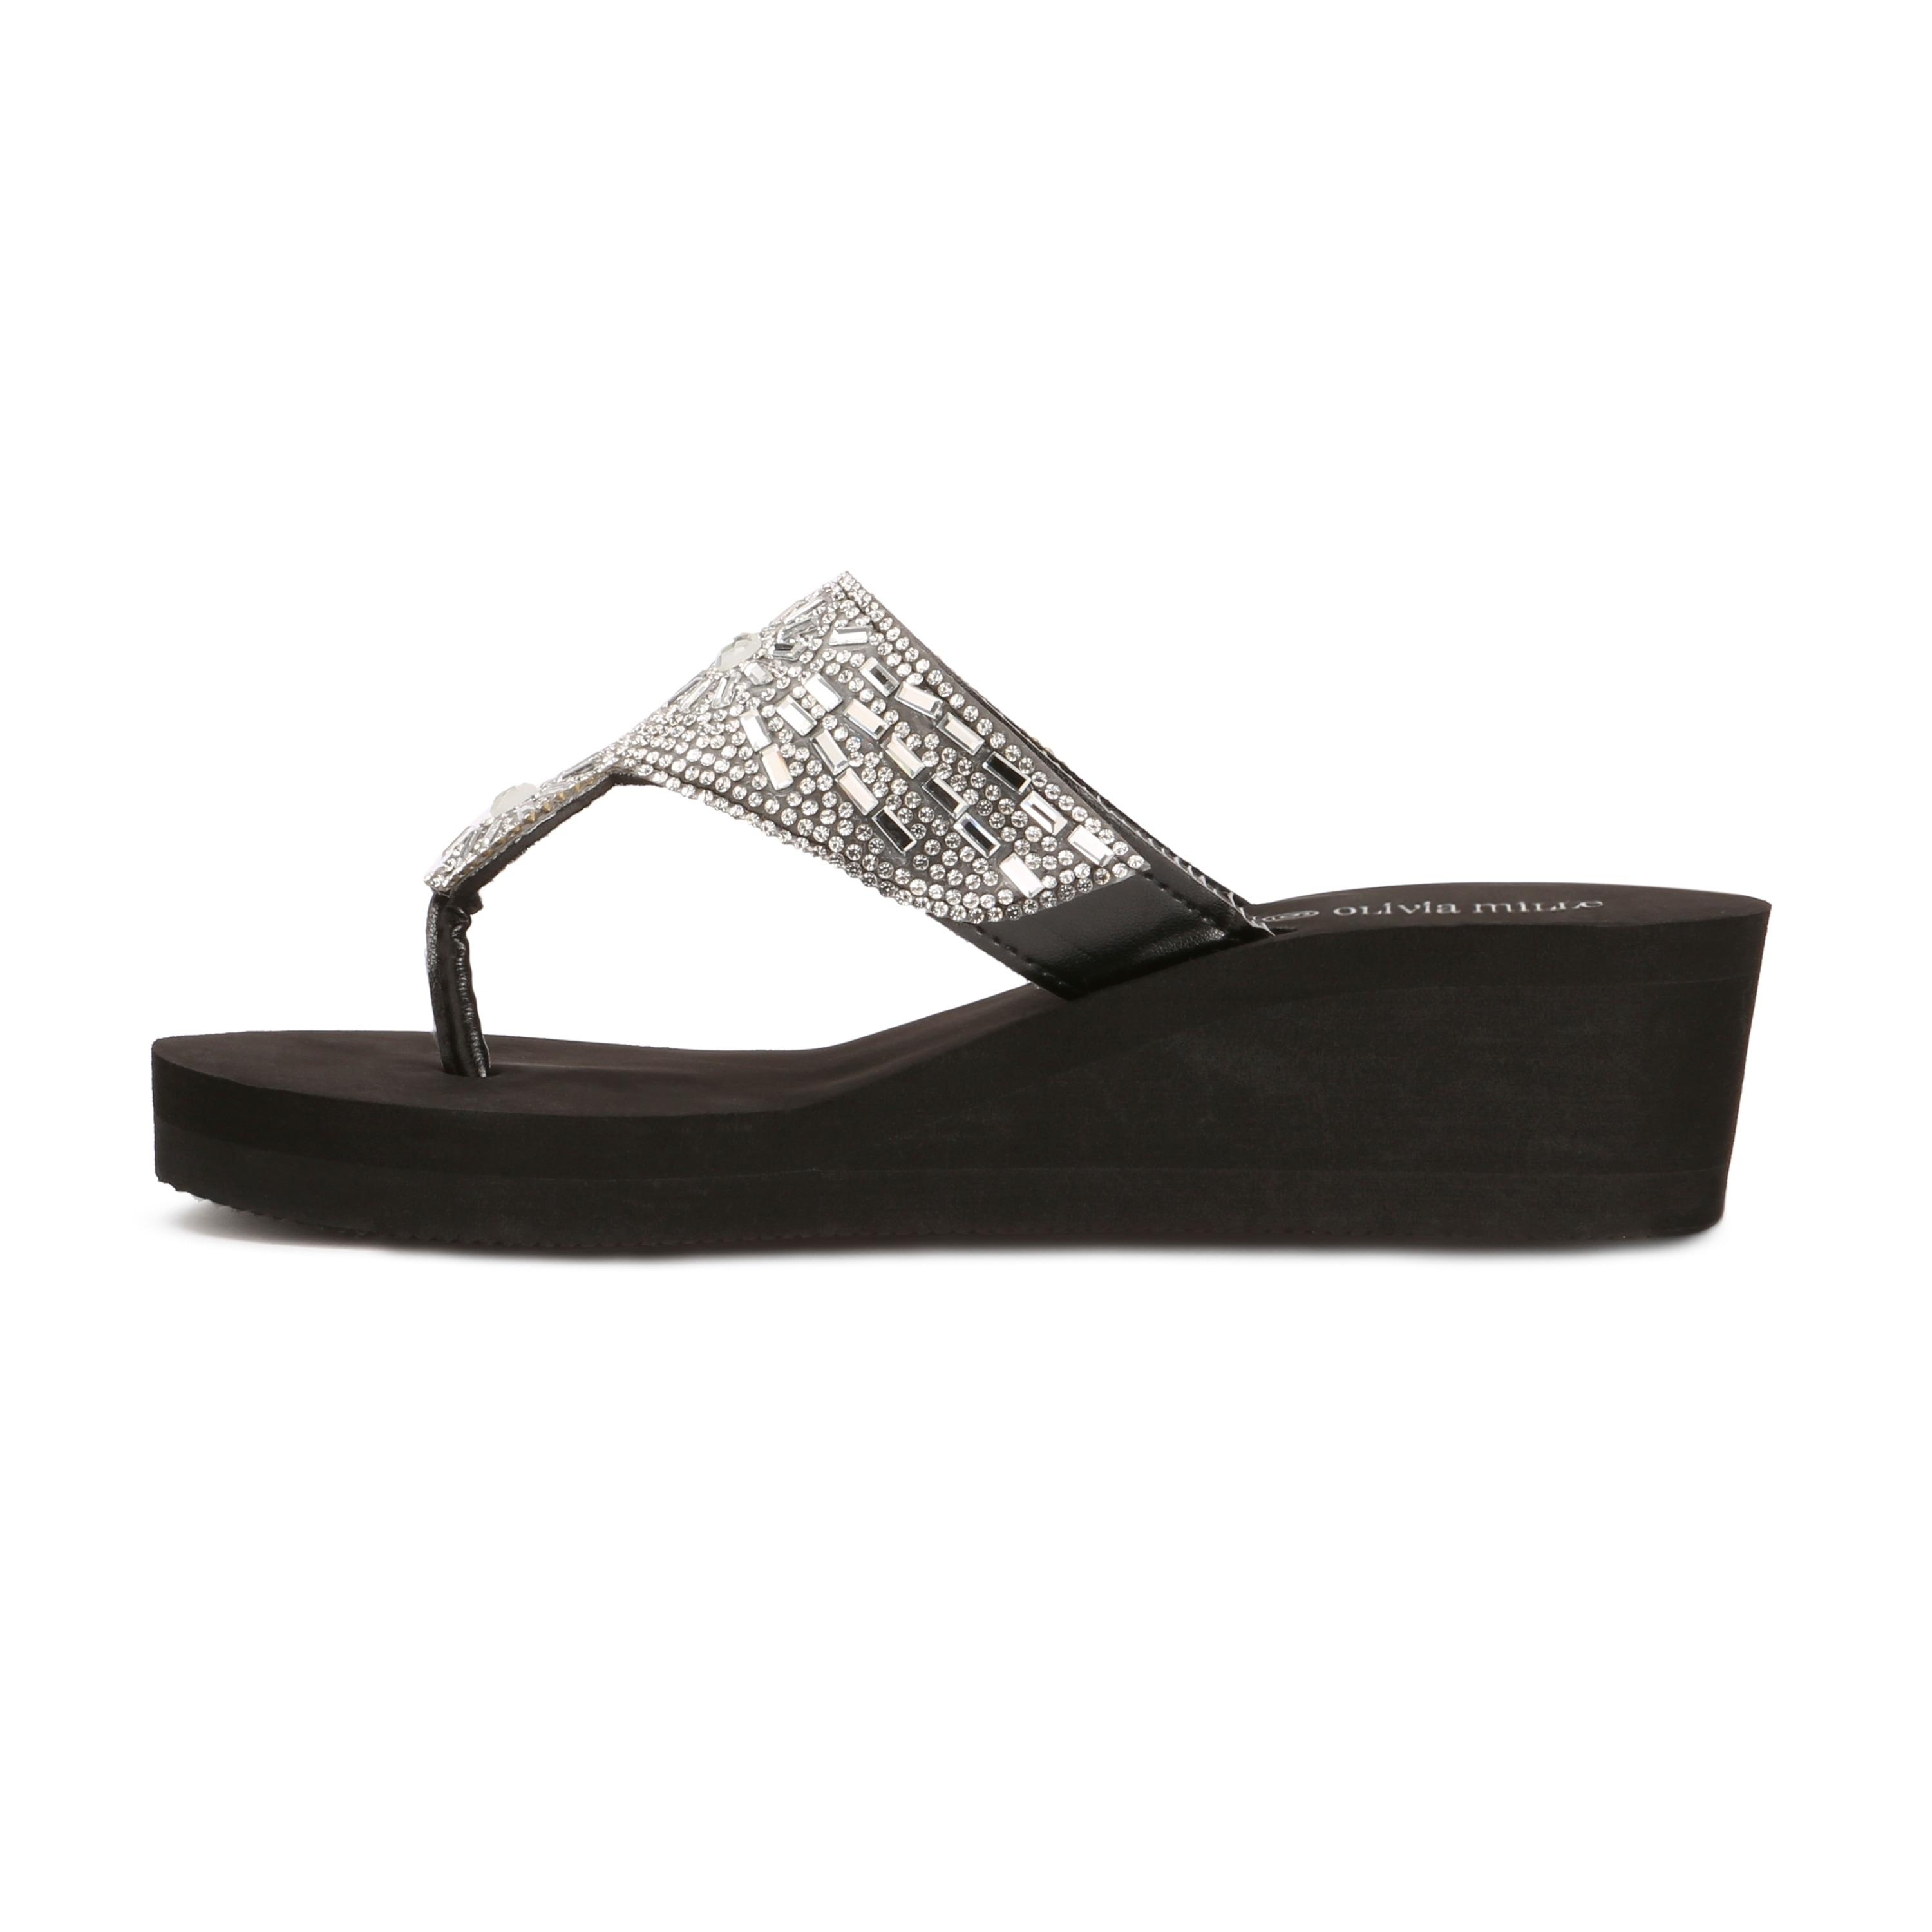 6970a3a9b94 Shop Olivia Miller  Hawthorne  Multi Rhinestone Circular EVA Wedge Sandals  - On Sale - Free Shipping On Orders Over  45 - Overstock - 20338753